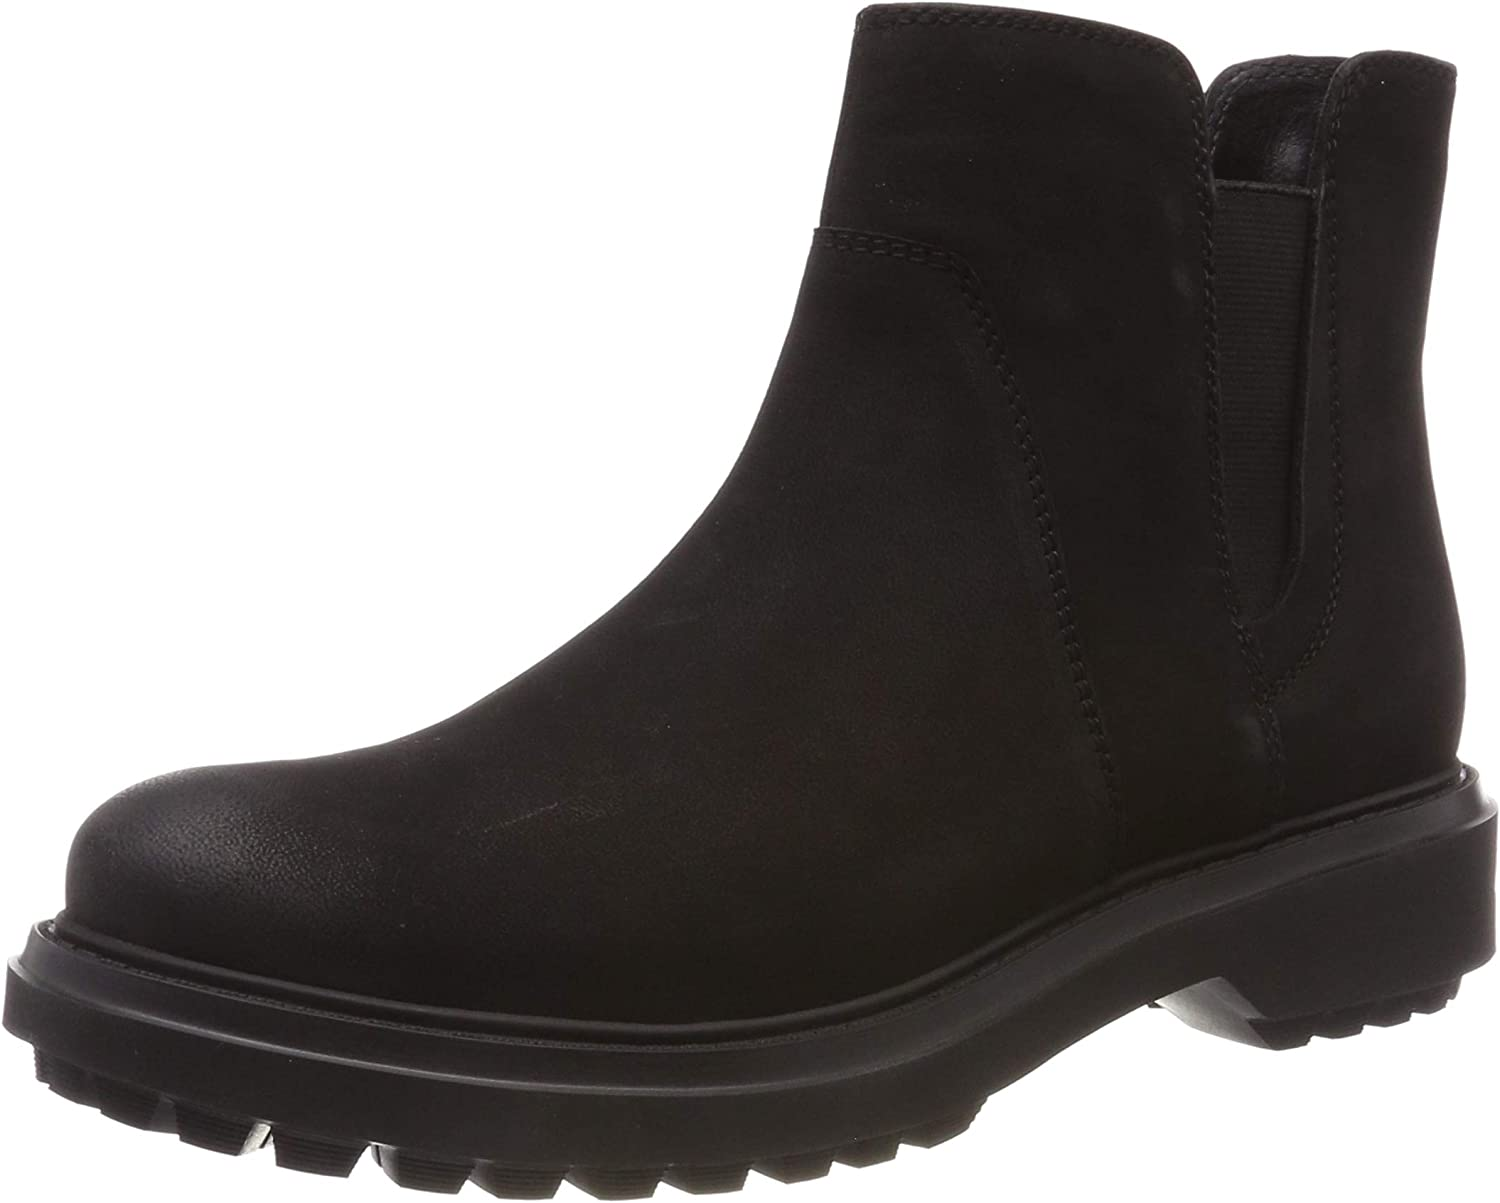 Geox Women's Asheely Leather Pull-On Boot Boot